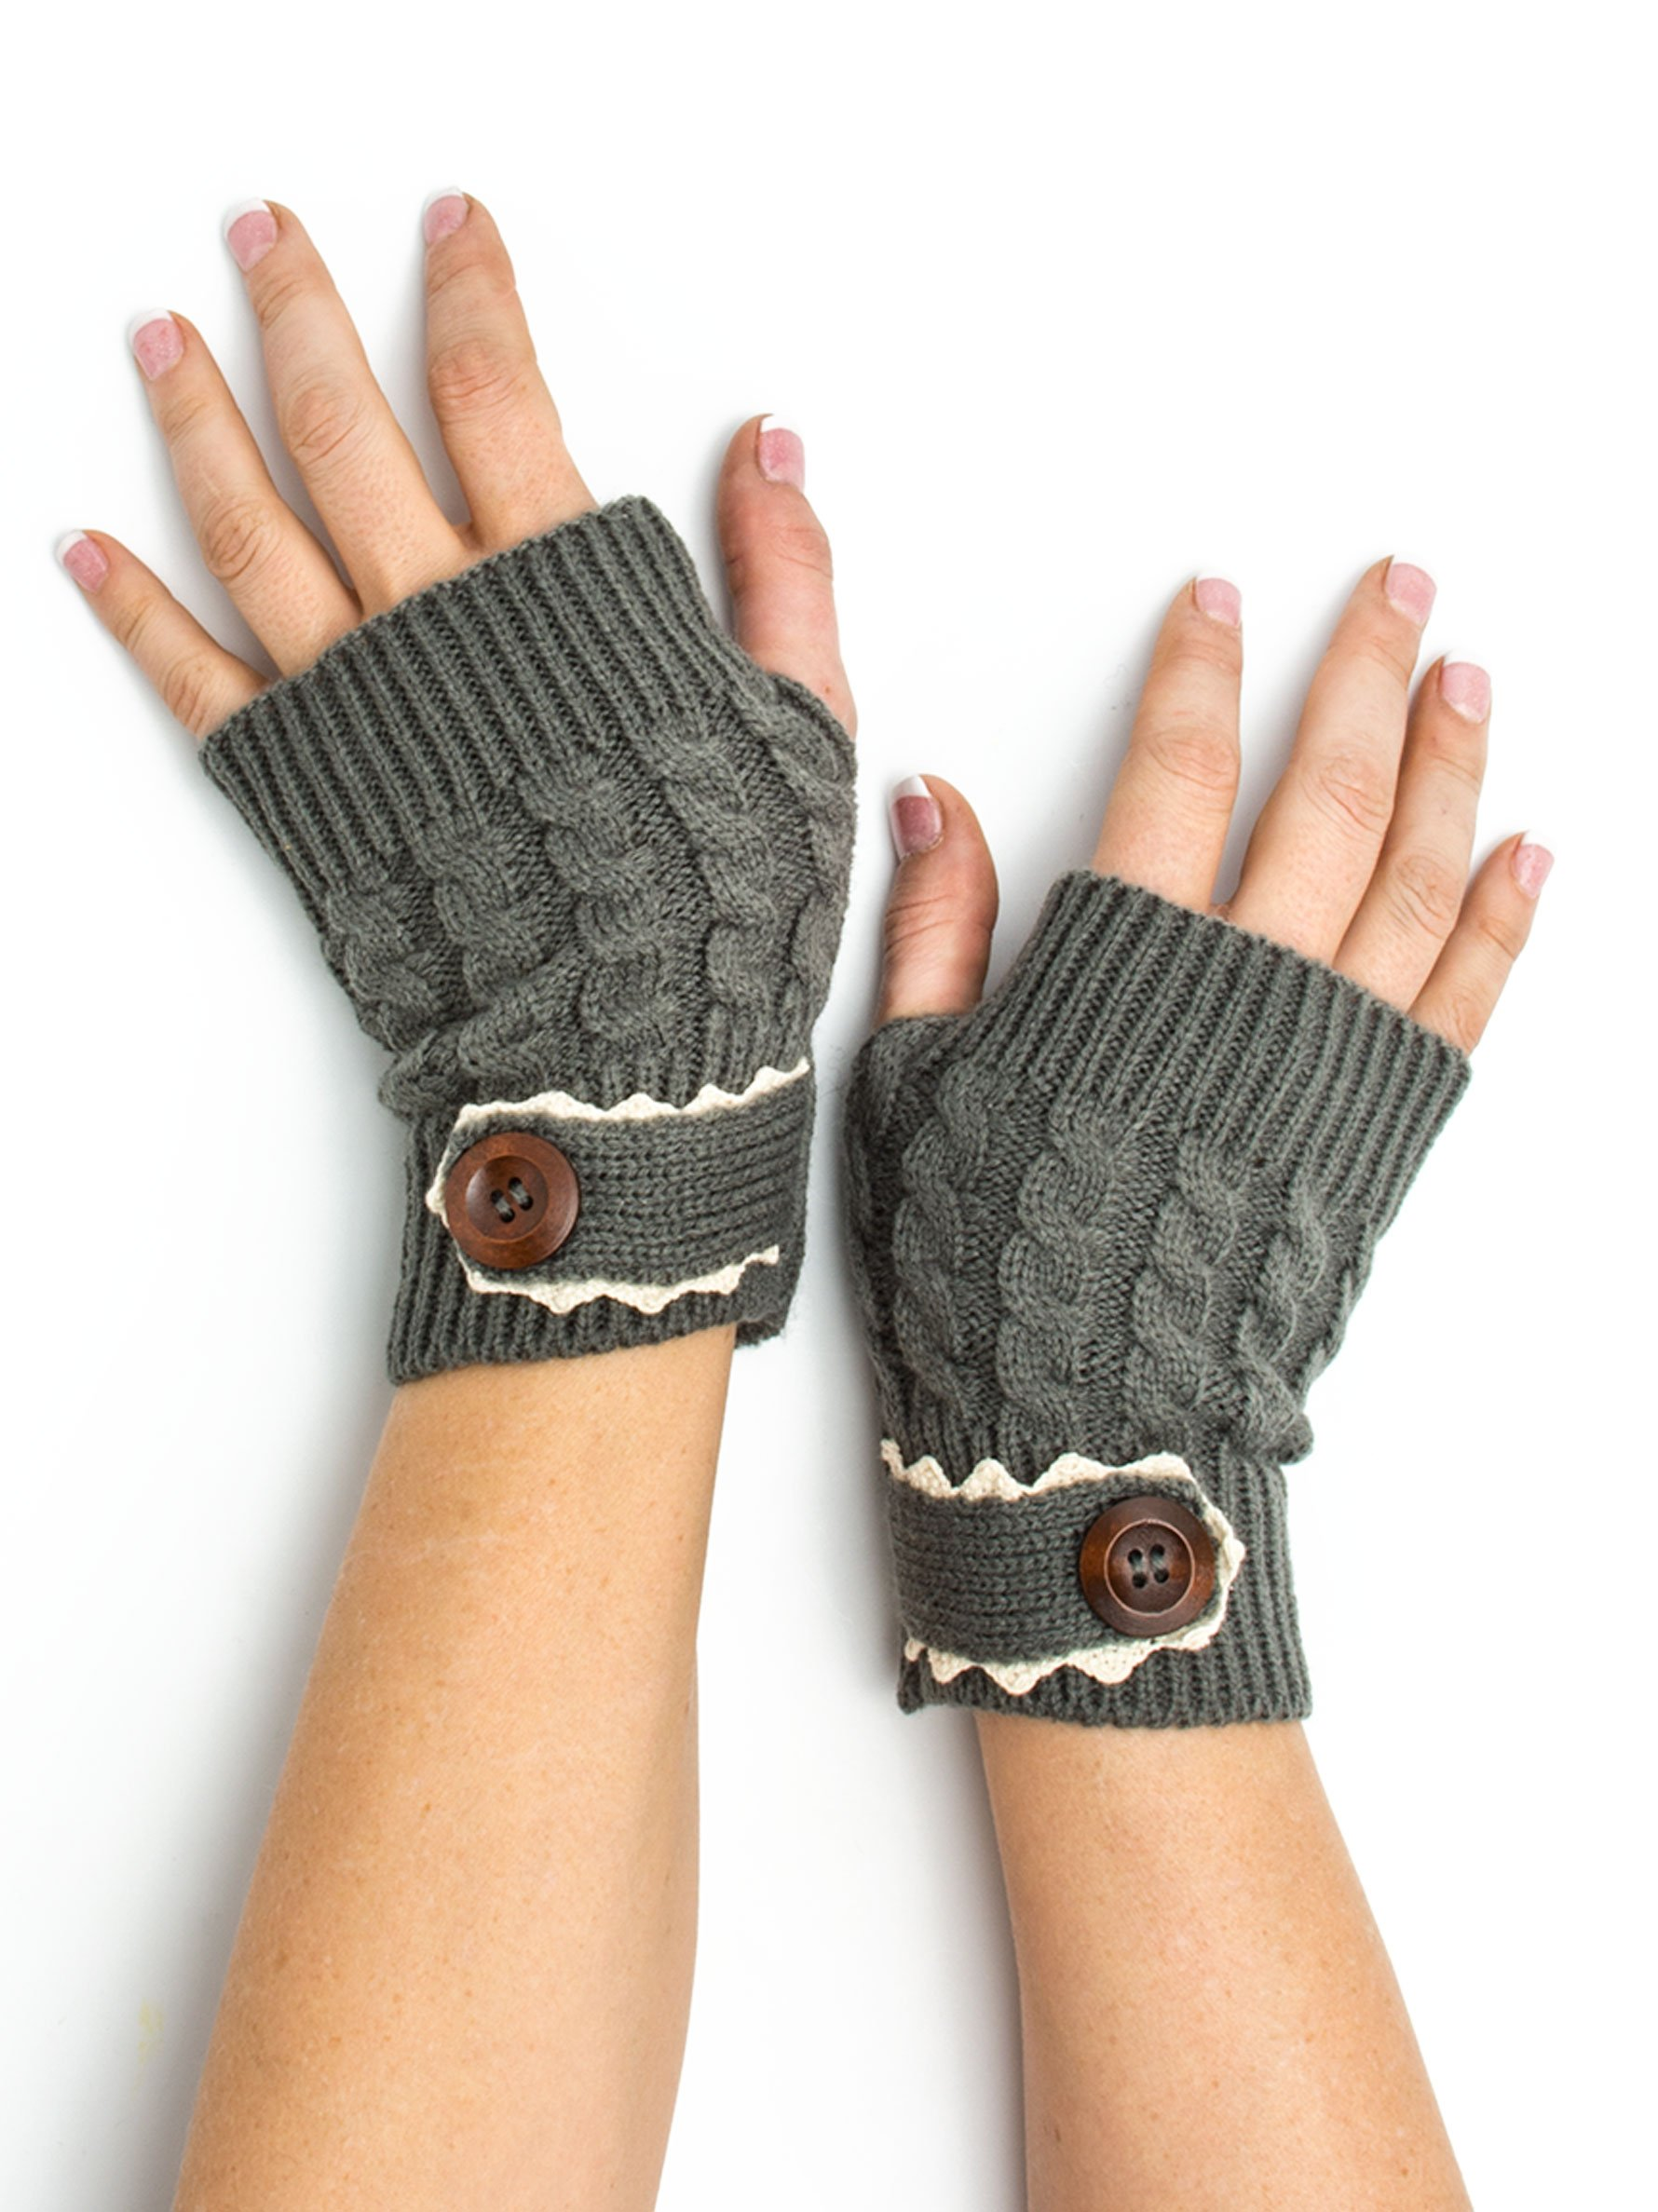 Bohomonde, Tawny Cable Knit Boho Mori Style Armwarmers/Fingerless Gloves with Crochet Lace (Rain Cloud)